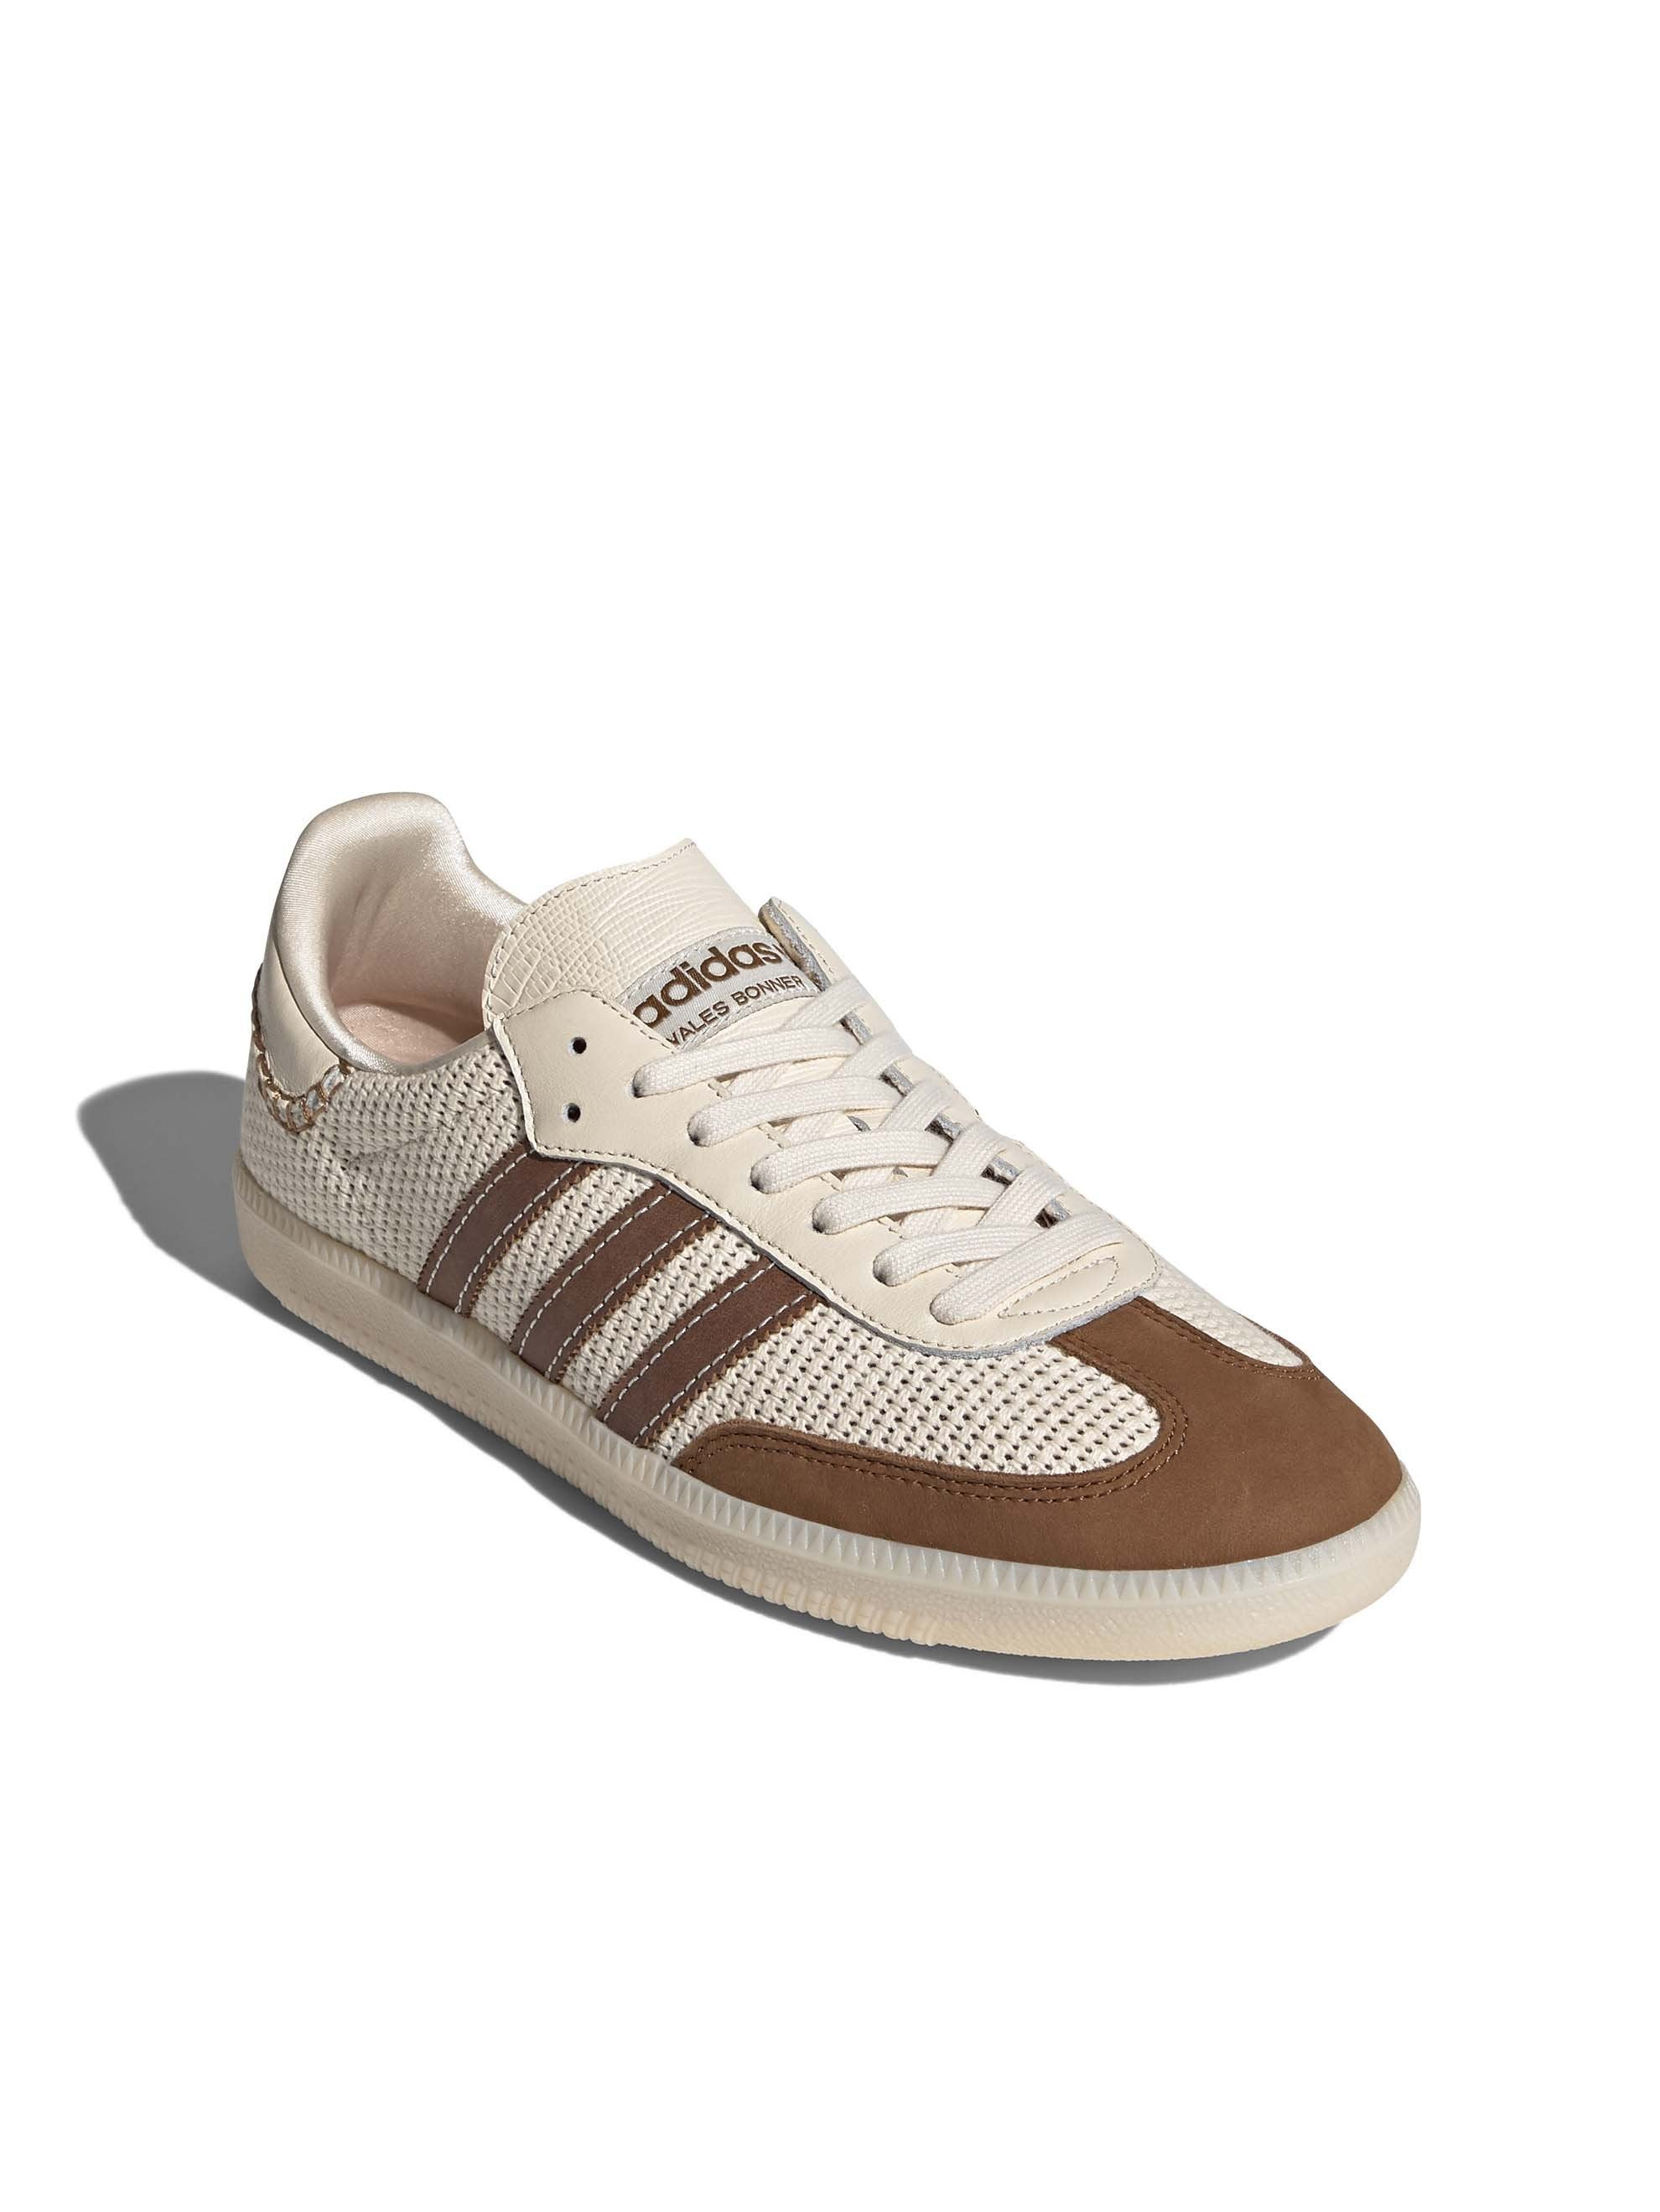 Cream White / Brown Adidas x Wales Bonner Samba 3